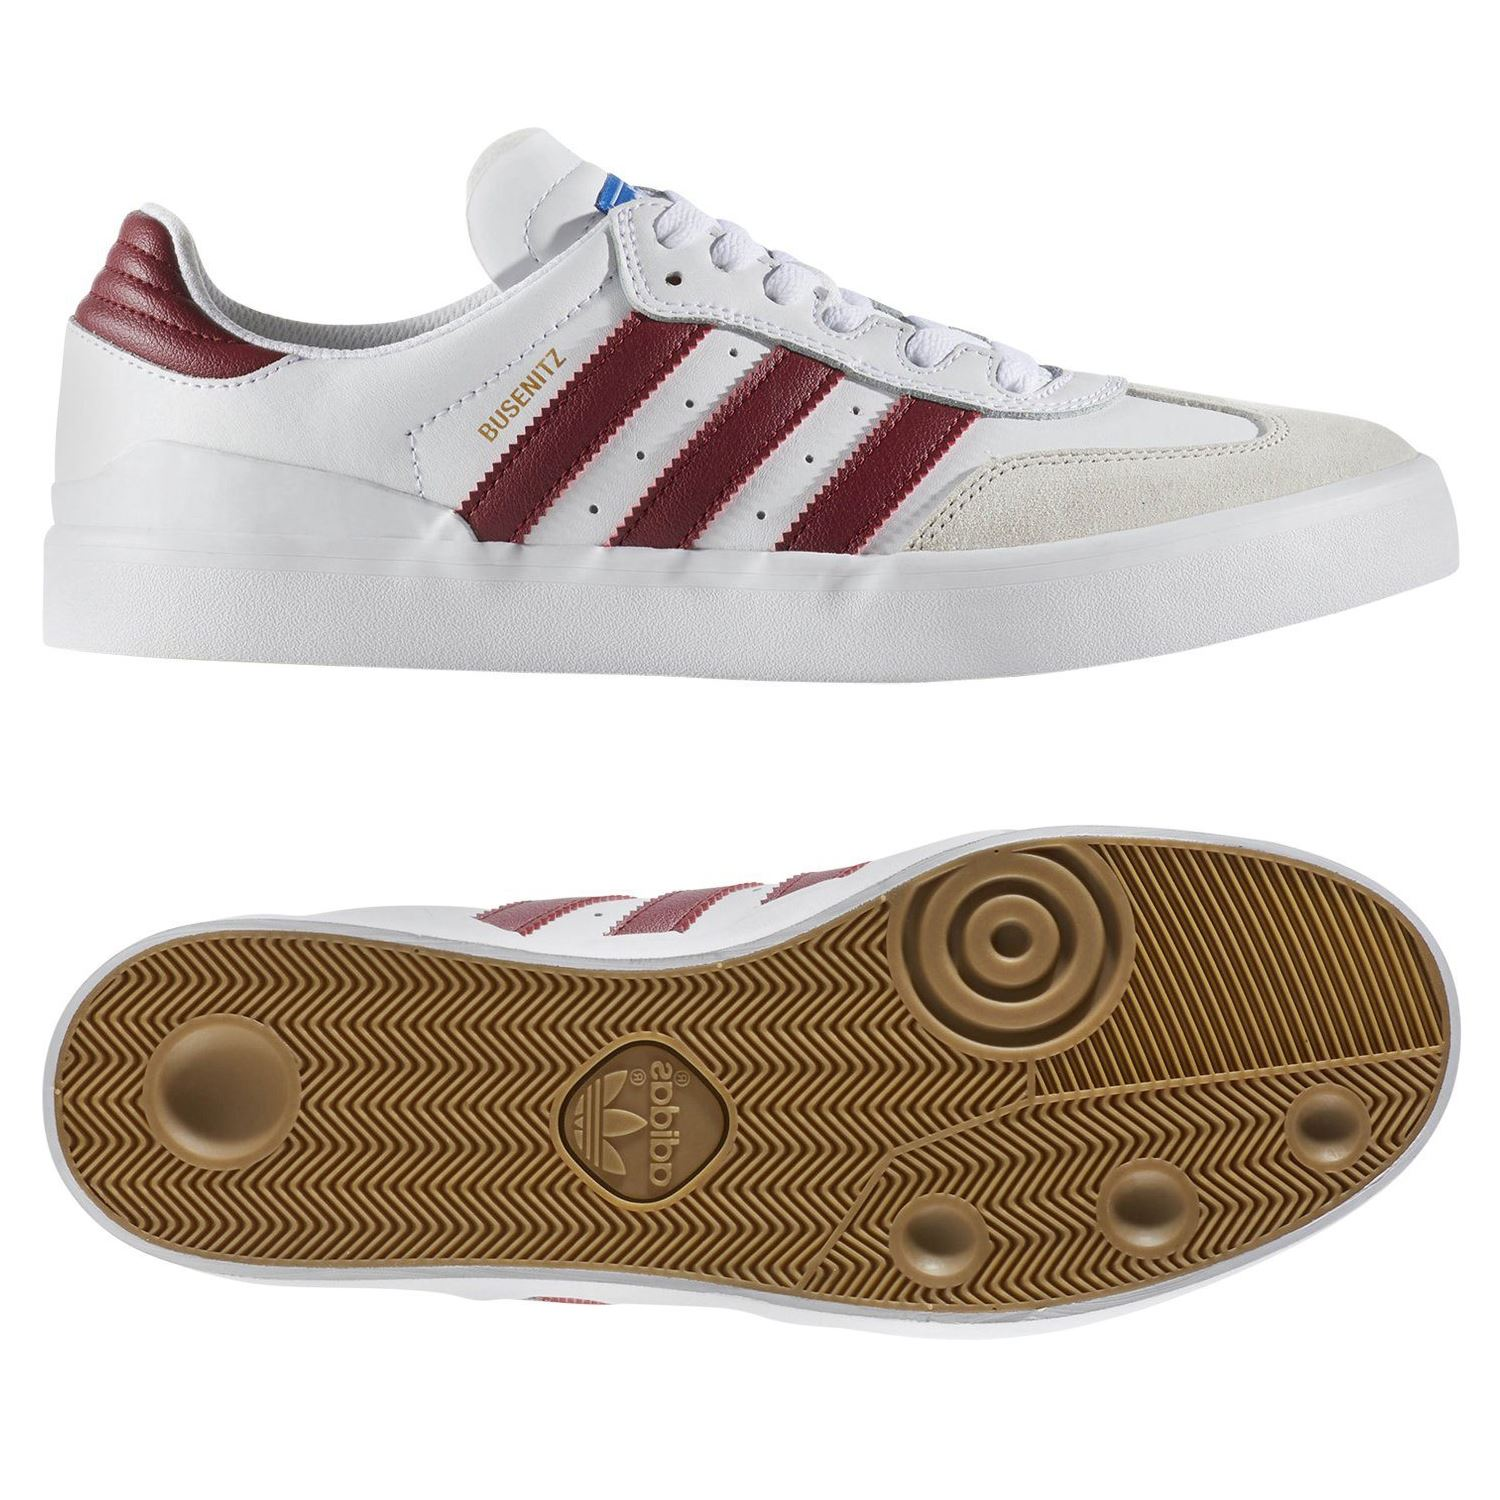 Details about adidas Originals MEN S BUSENITZ RX TRAINERS WHITE SKATEBOARDING  SHOES SNEAKERS 89676b1a9